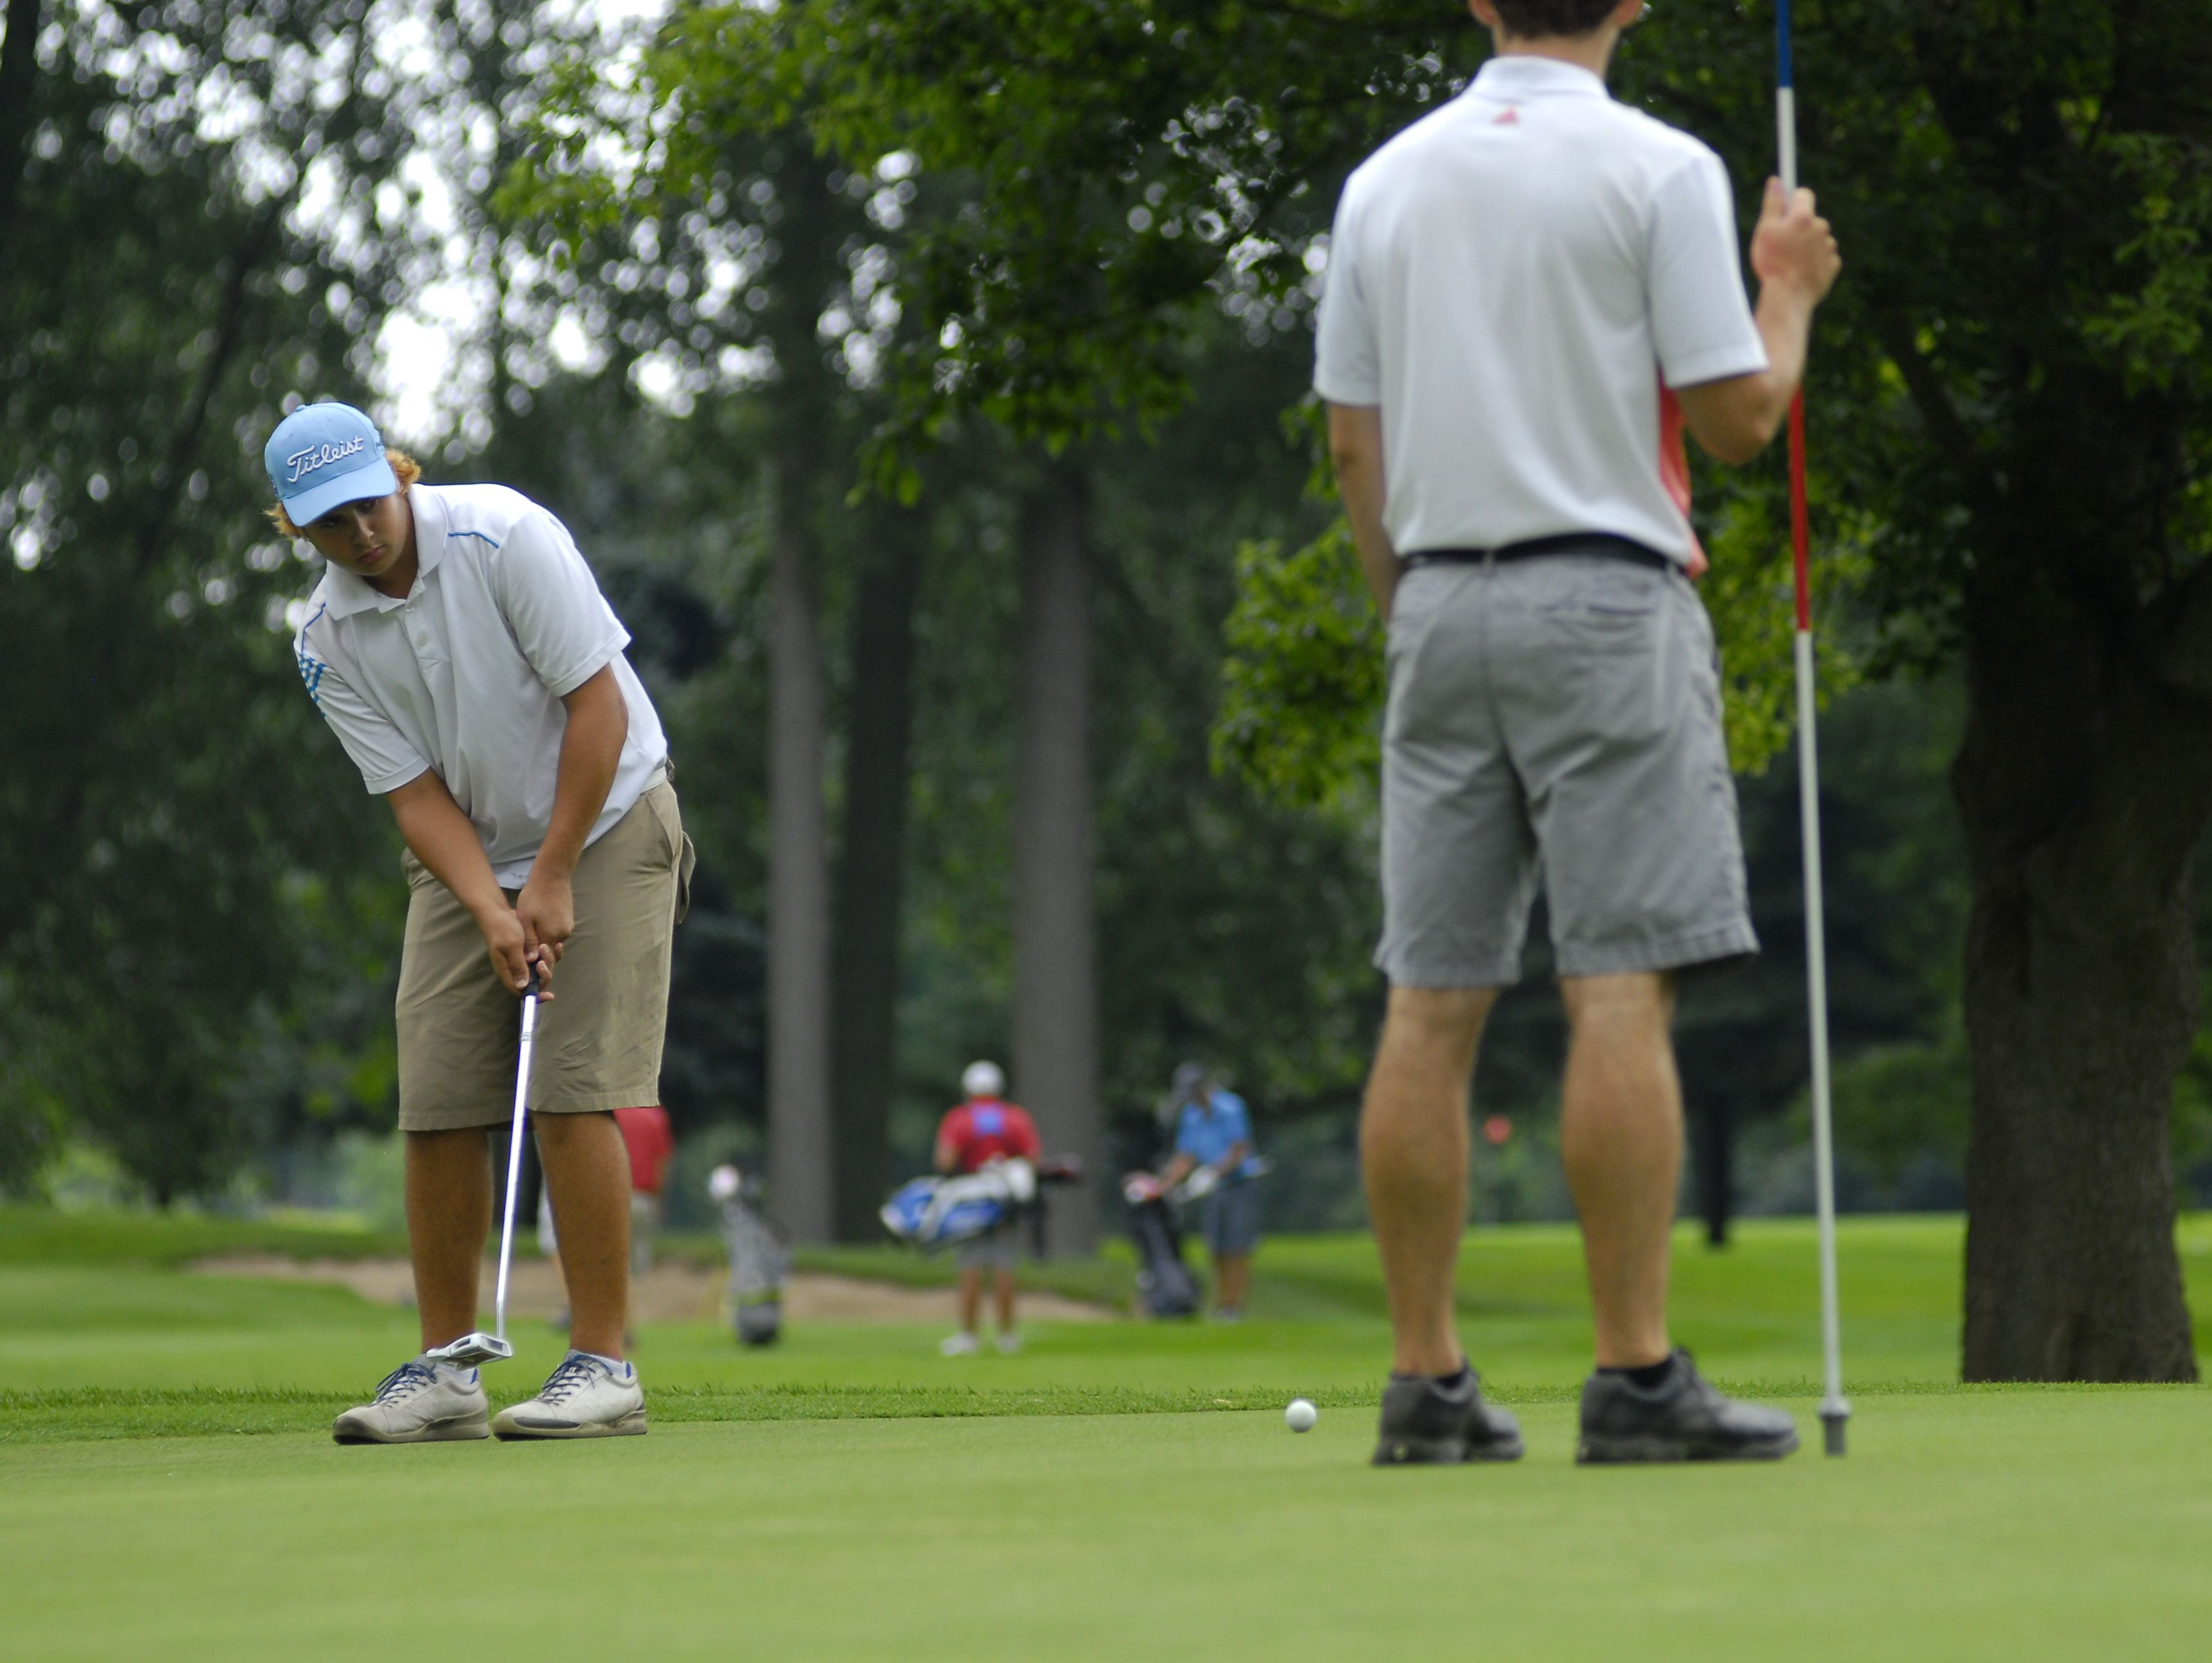 Mitch Bazinski, of Macomb, watches his putt approach the hole Monday, Aug 1, during the Tournament of Champions at the Port Huron Elks Golf Course.